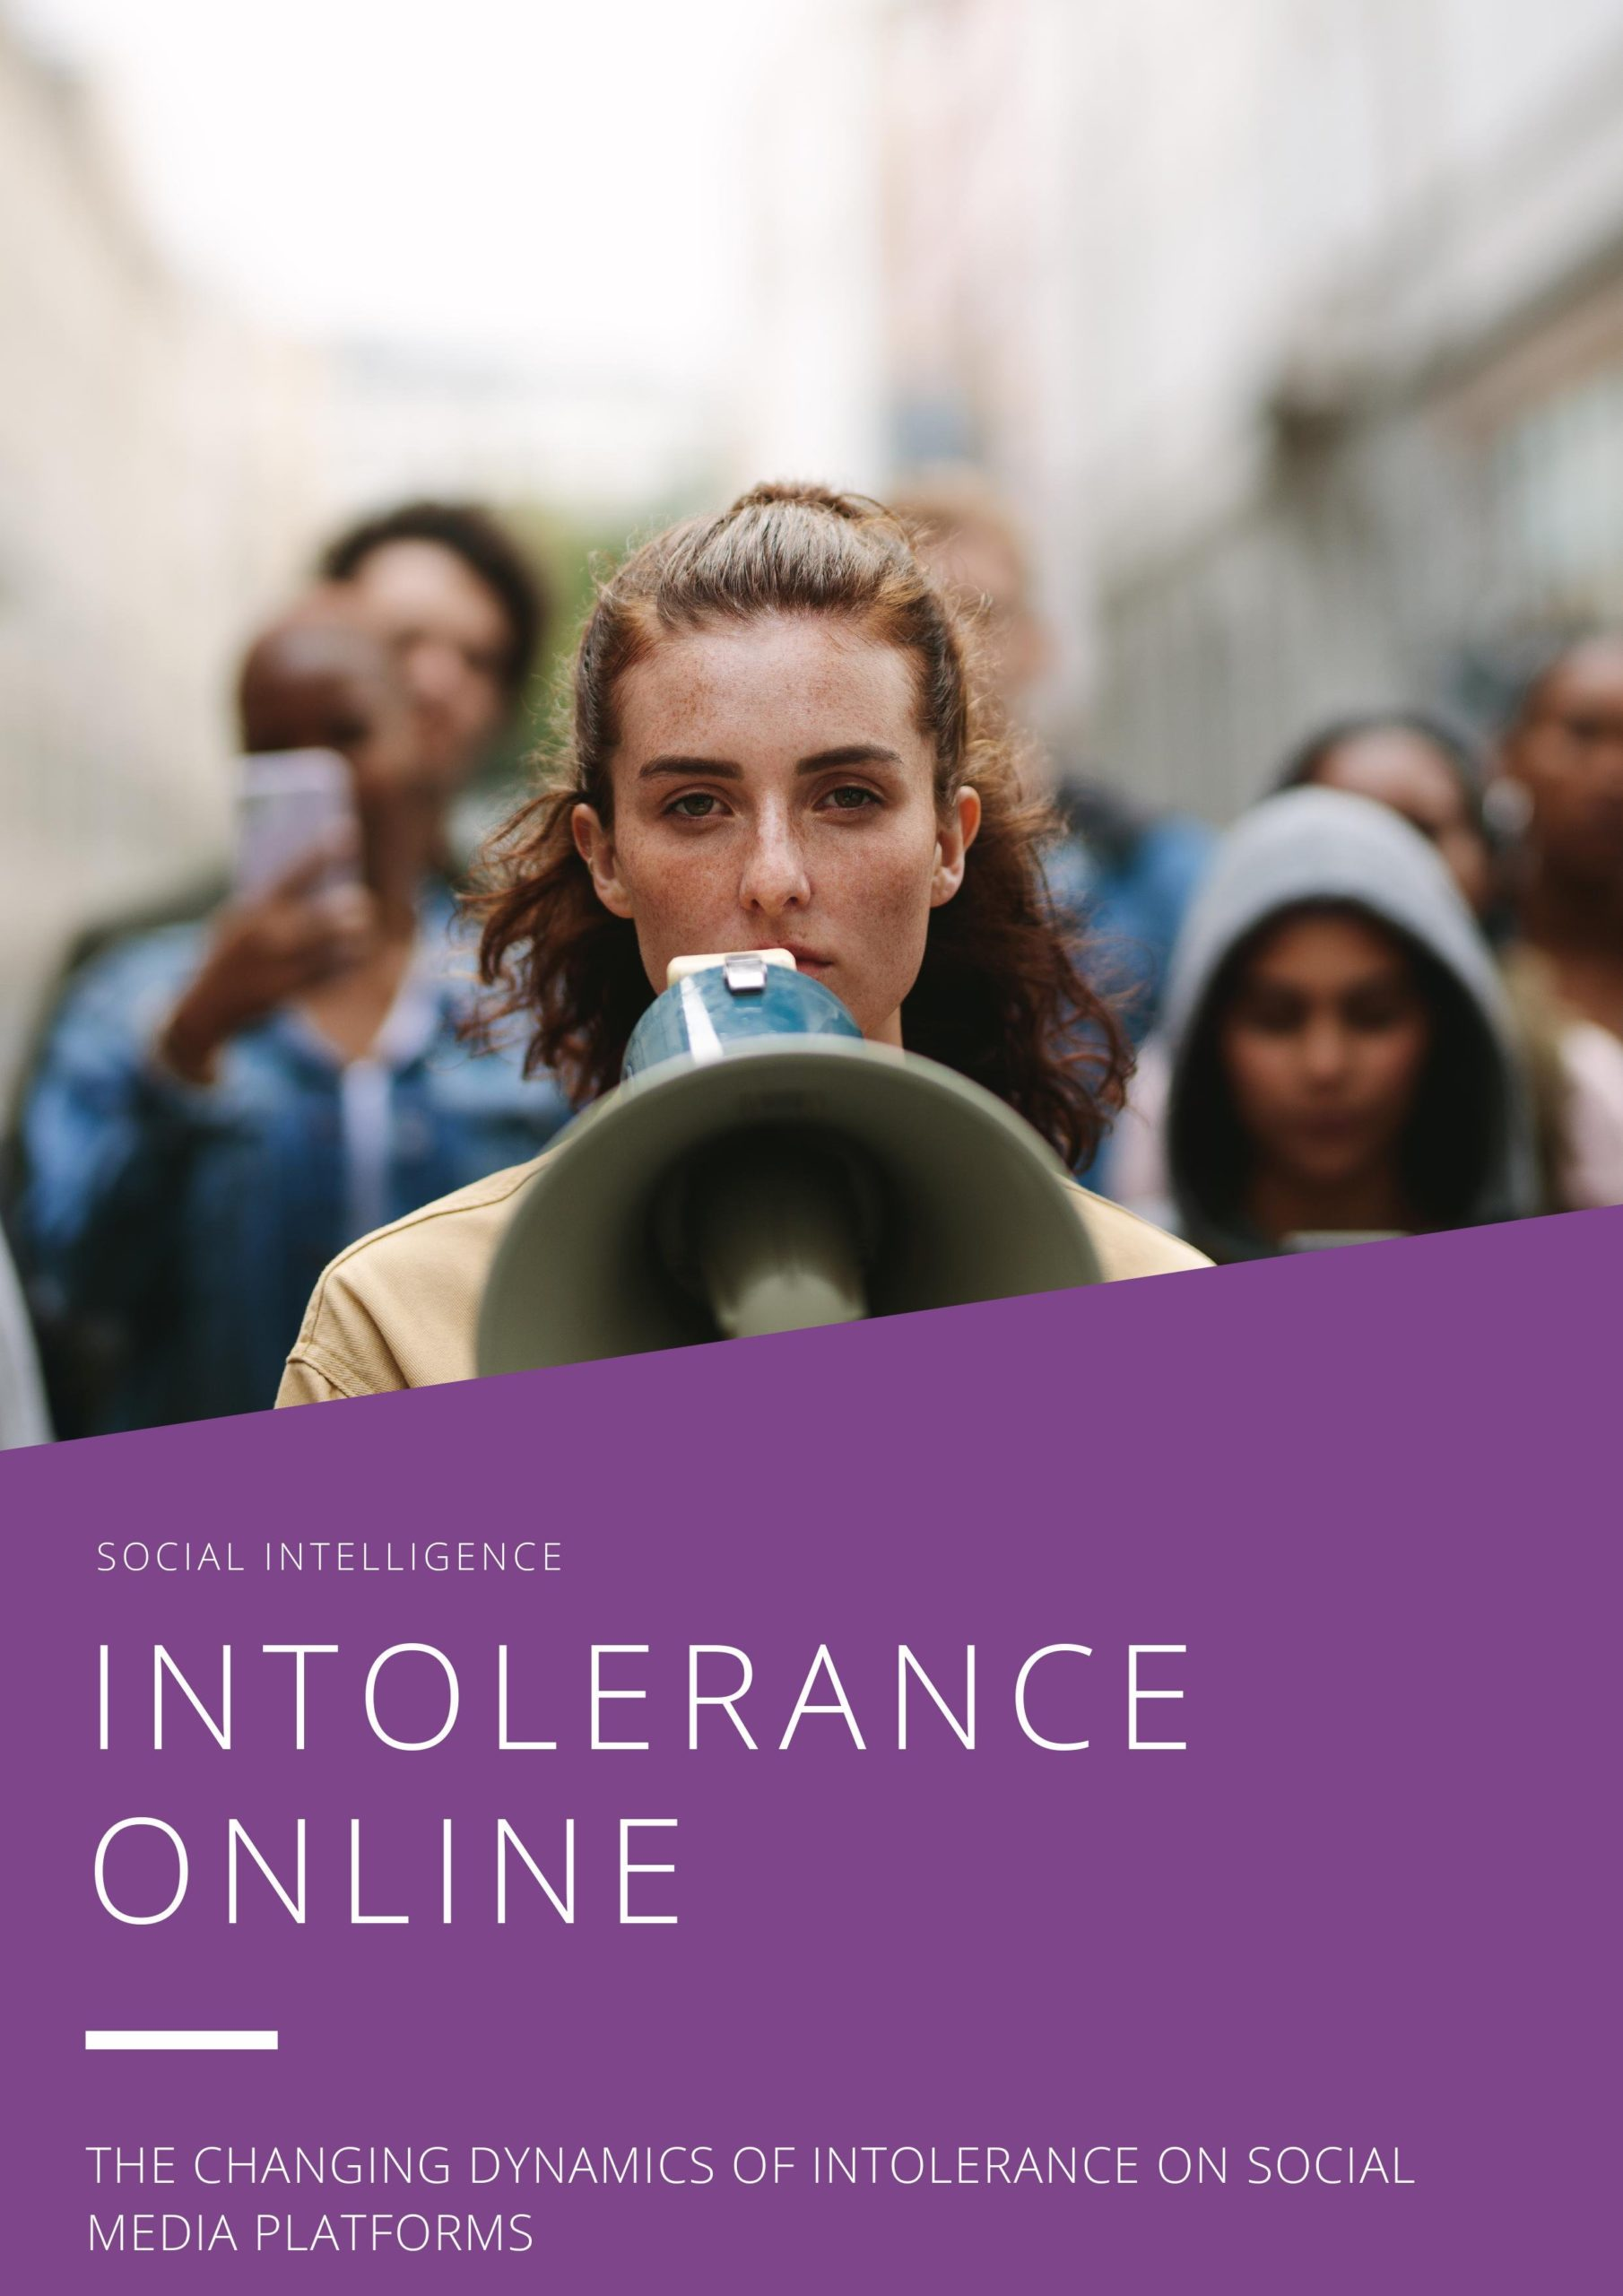 Intolerance Online Ebook Sized Cover 1 scaled